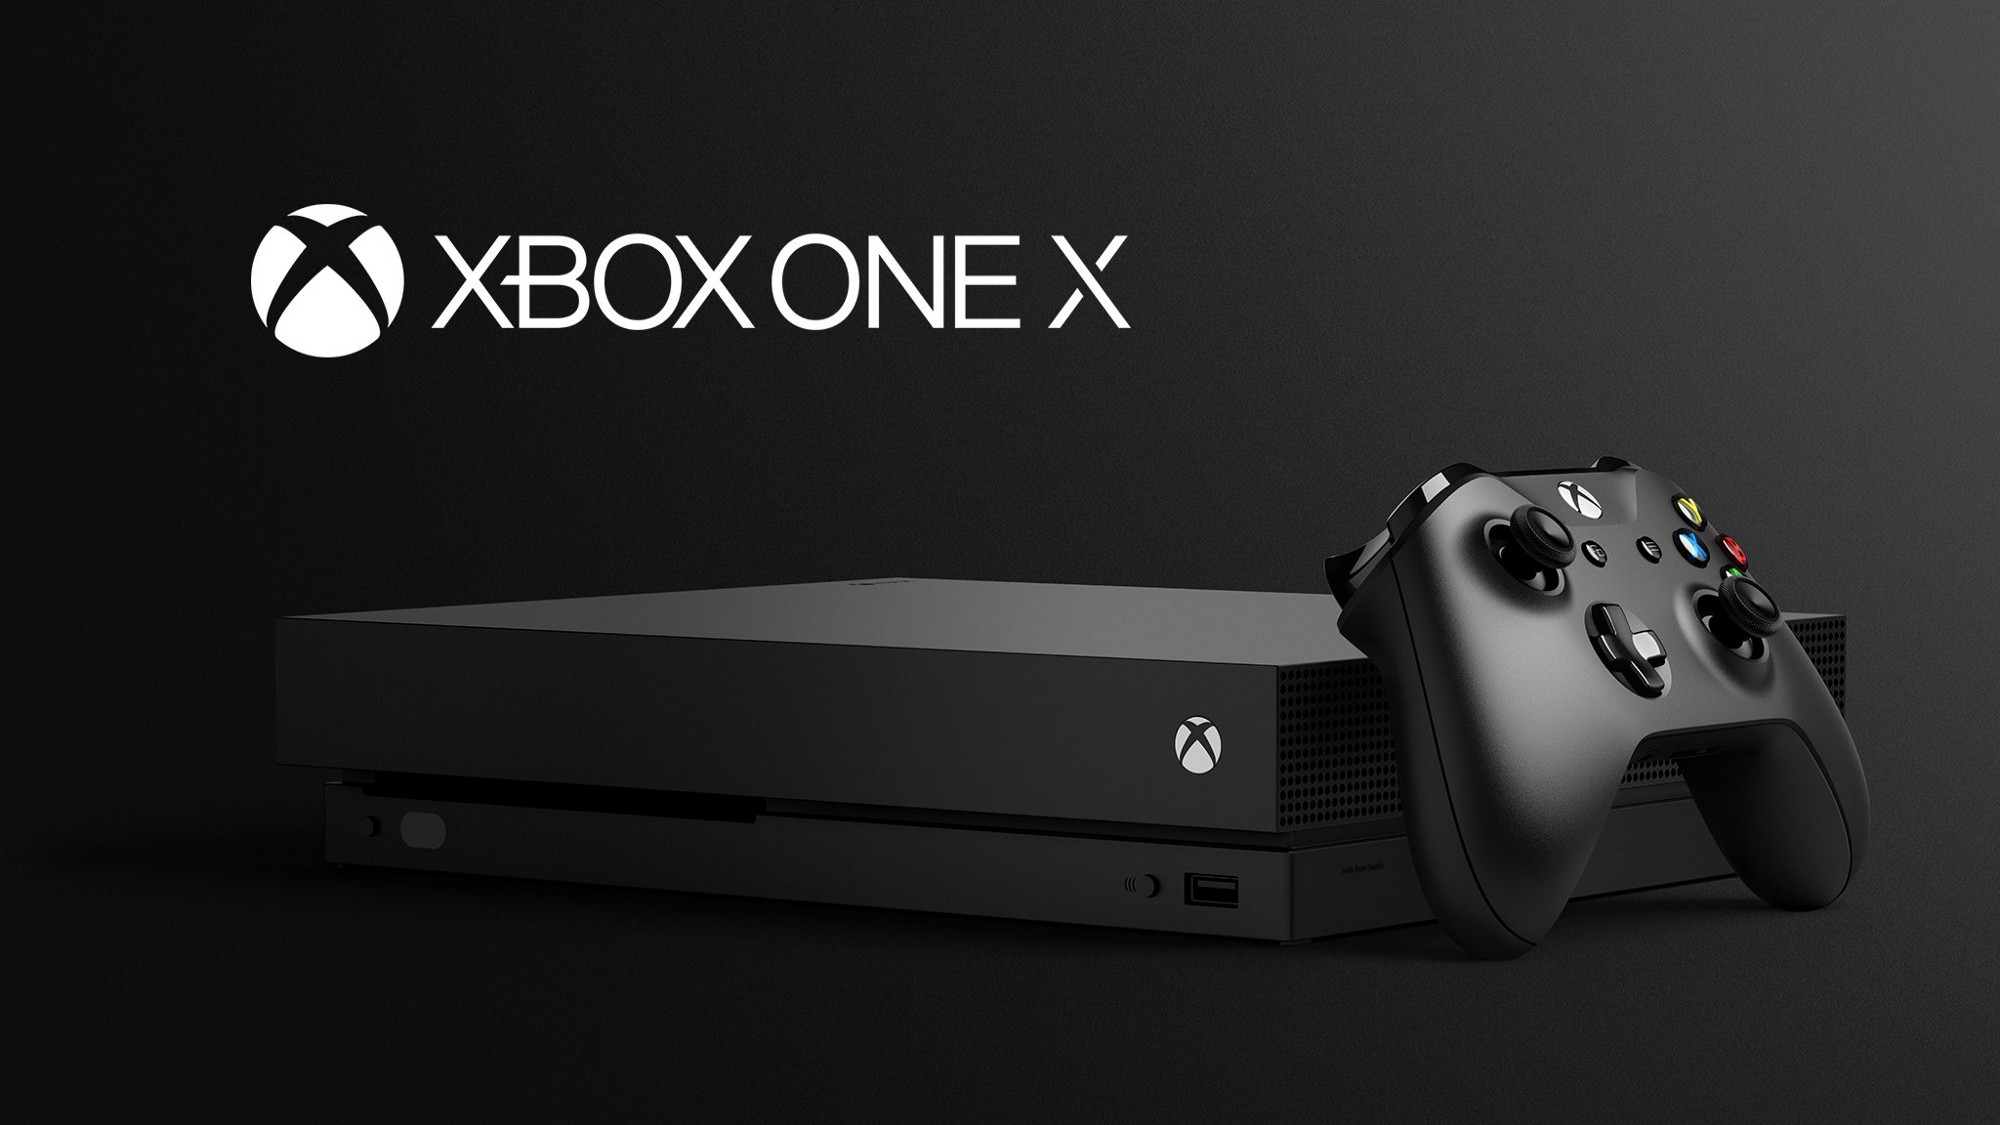 40 Names For The New Xbox That Would Have Been Better Than 'Xbox One X'